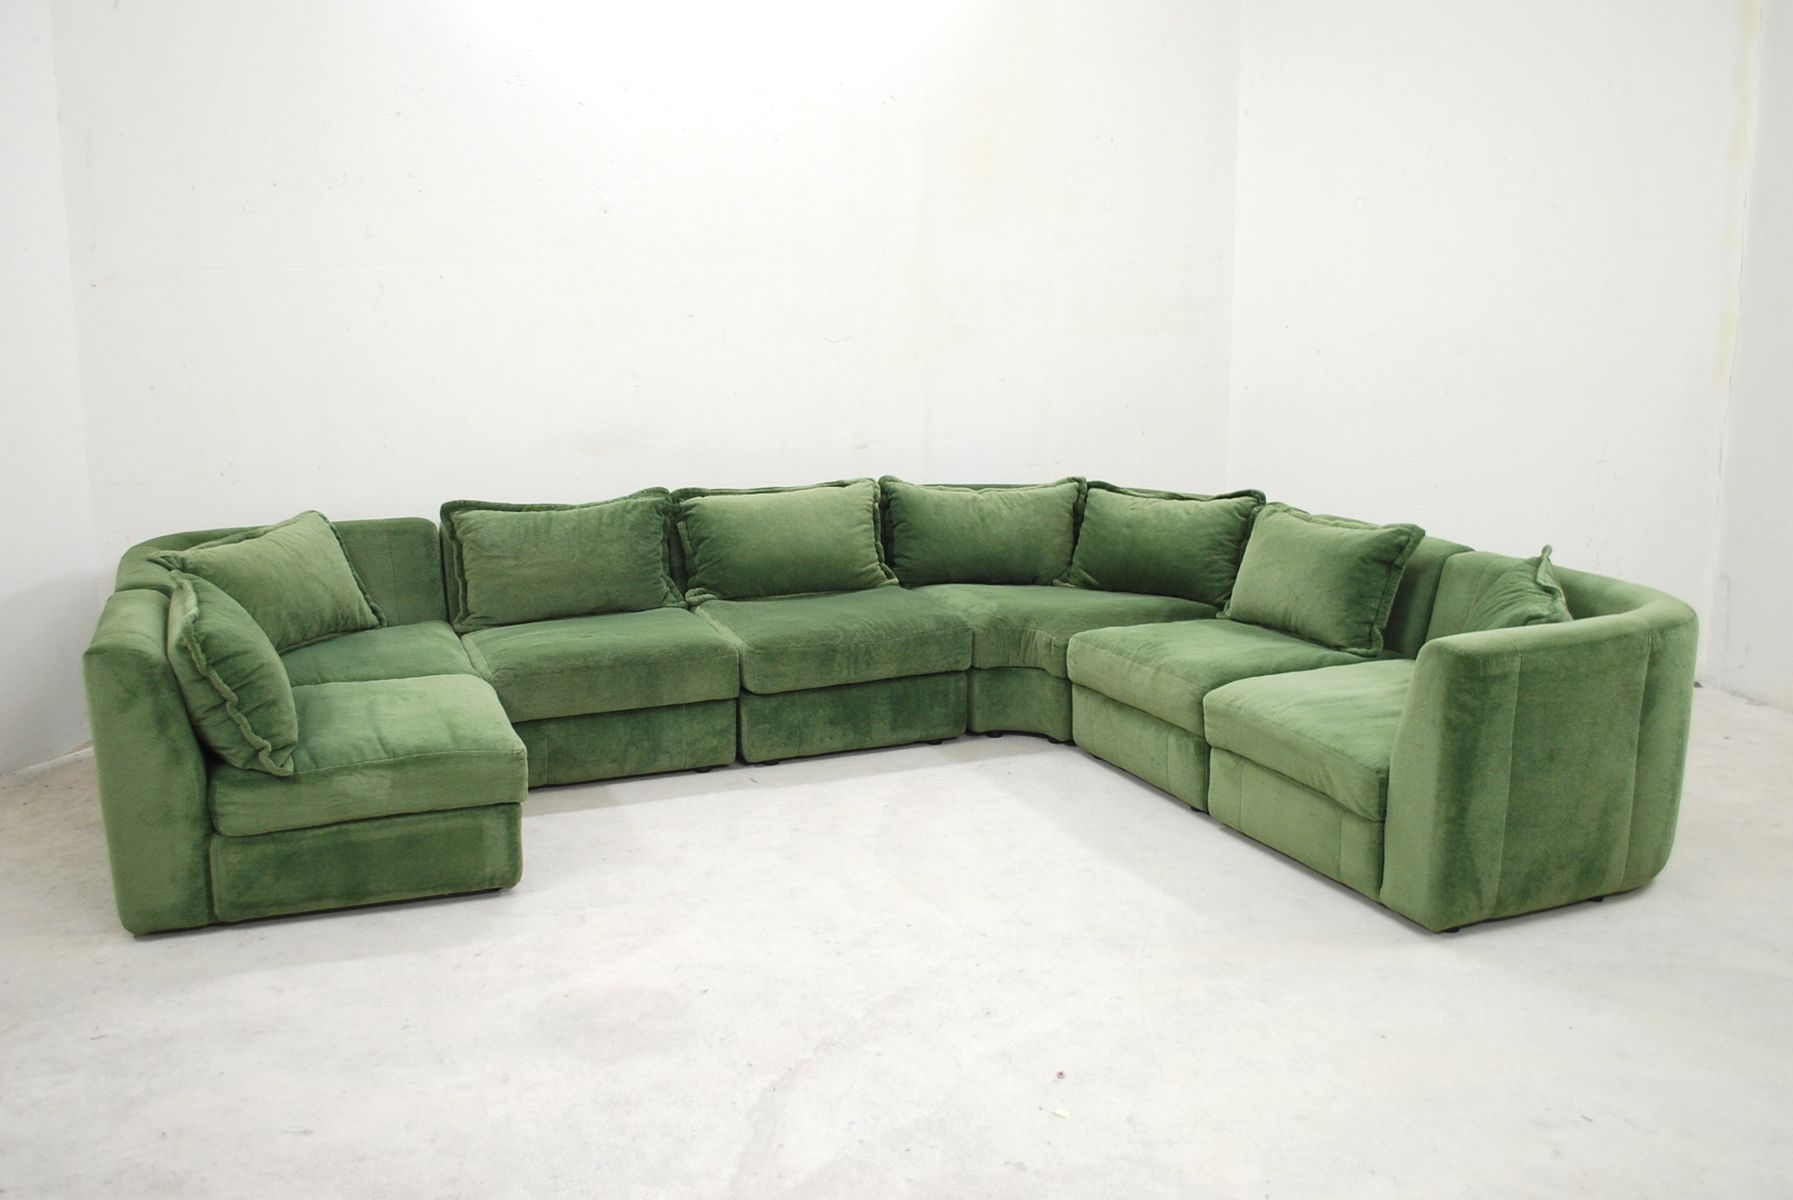 vintage green modular sofa from rolf benz for sale at pamono. Black Bedroom Furniture Sets. Home Design Ideas